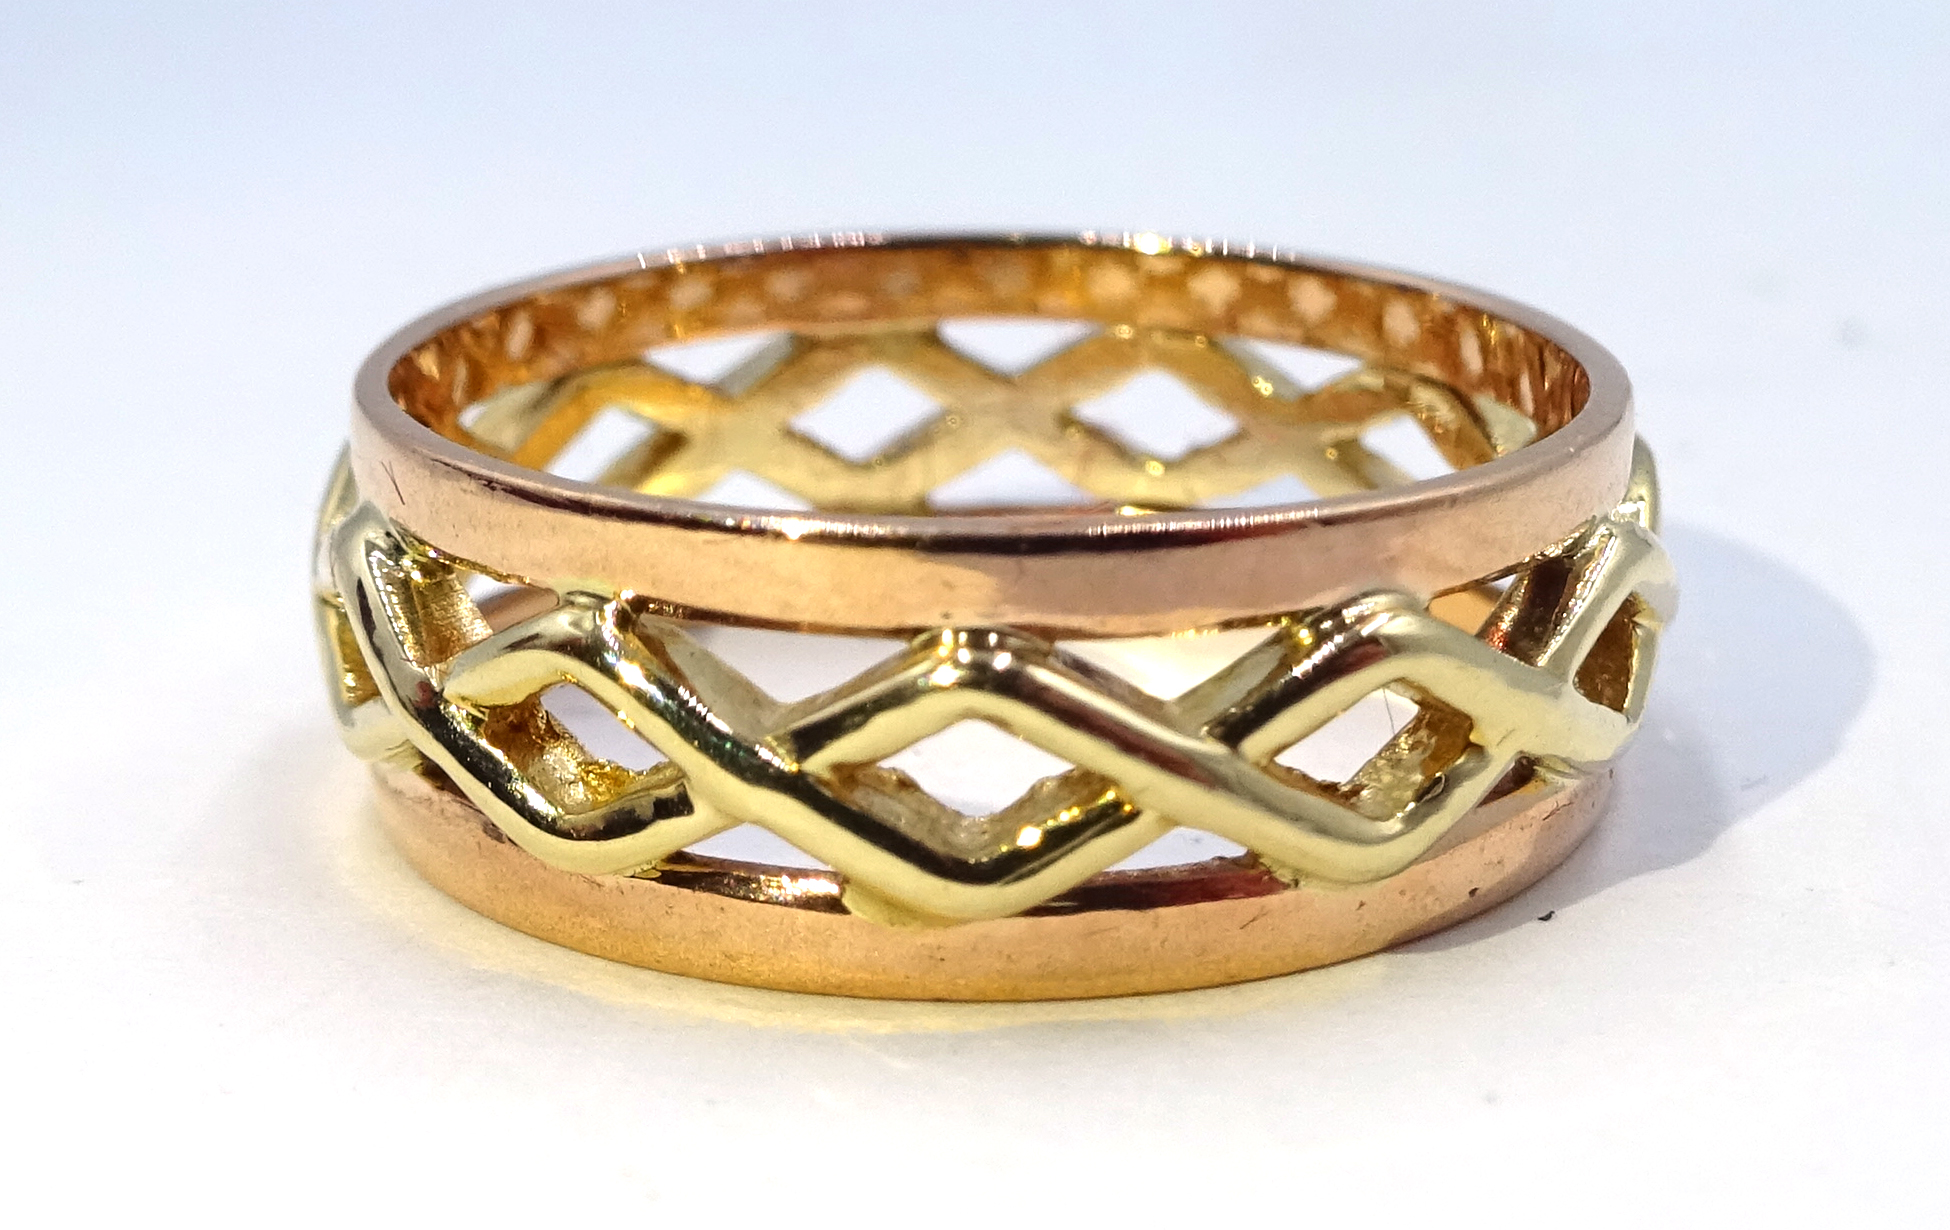 Lot 1054 - 9ct gold filigree ring hallmarked Condition Report & Further Details Approx 3.